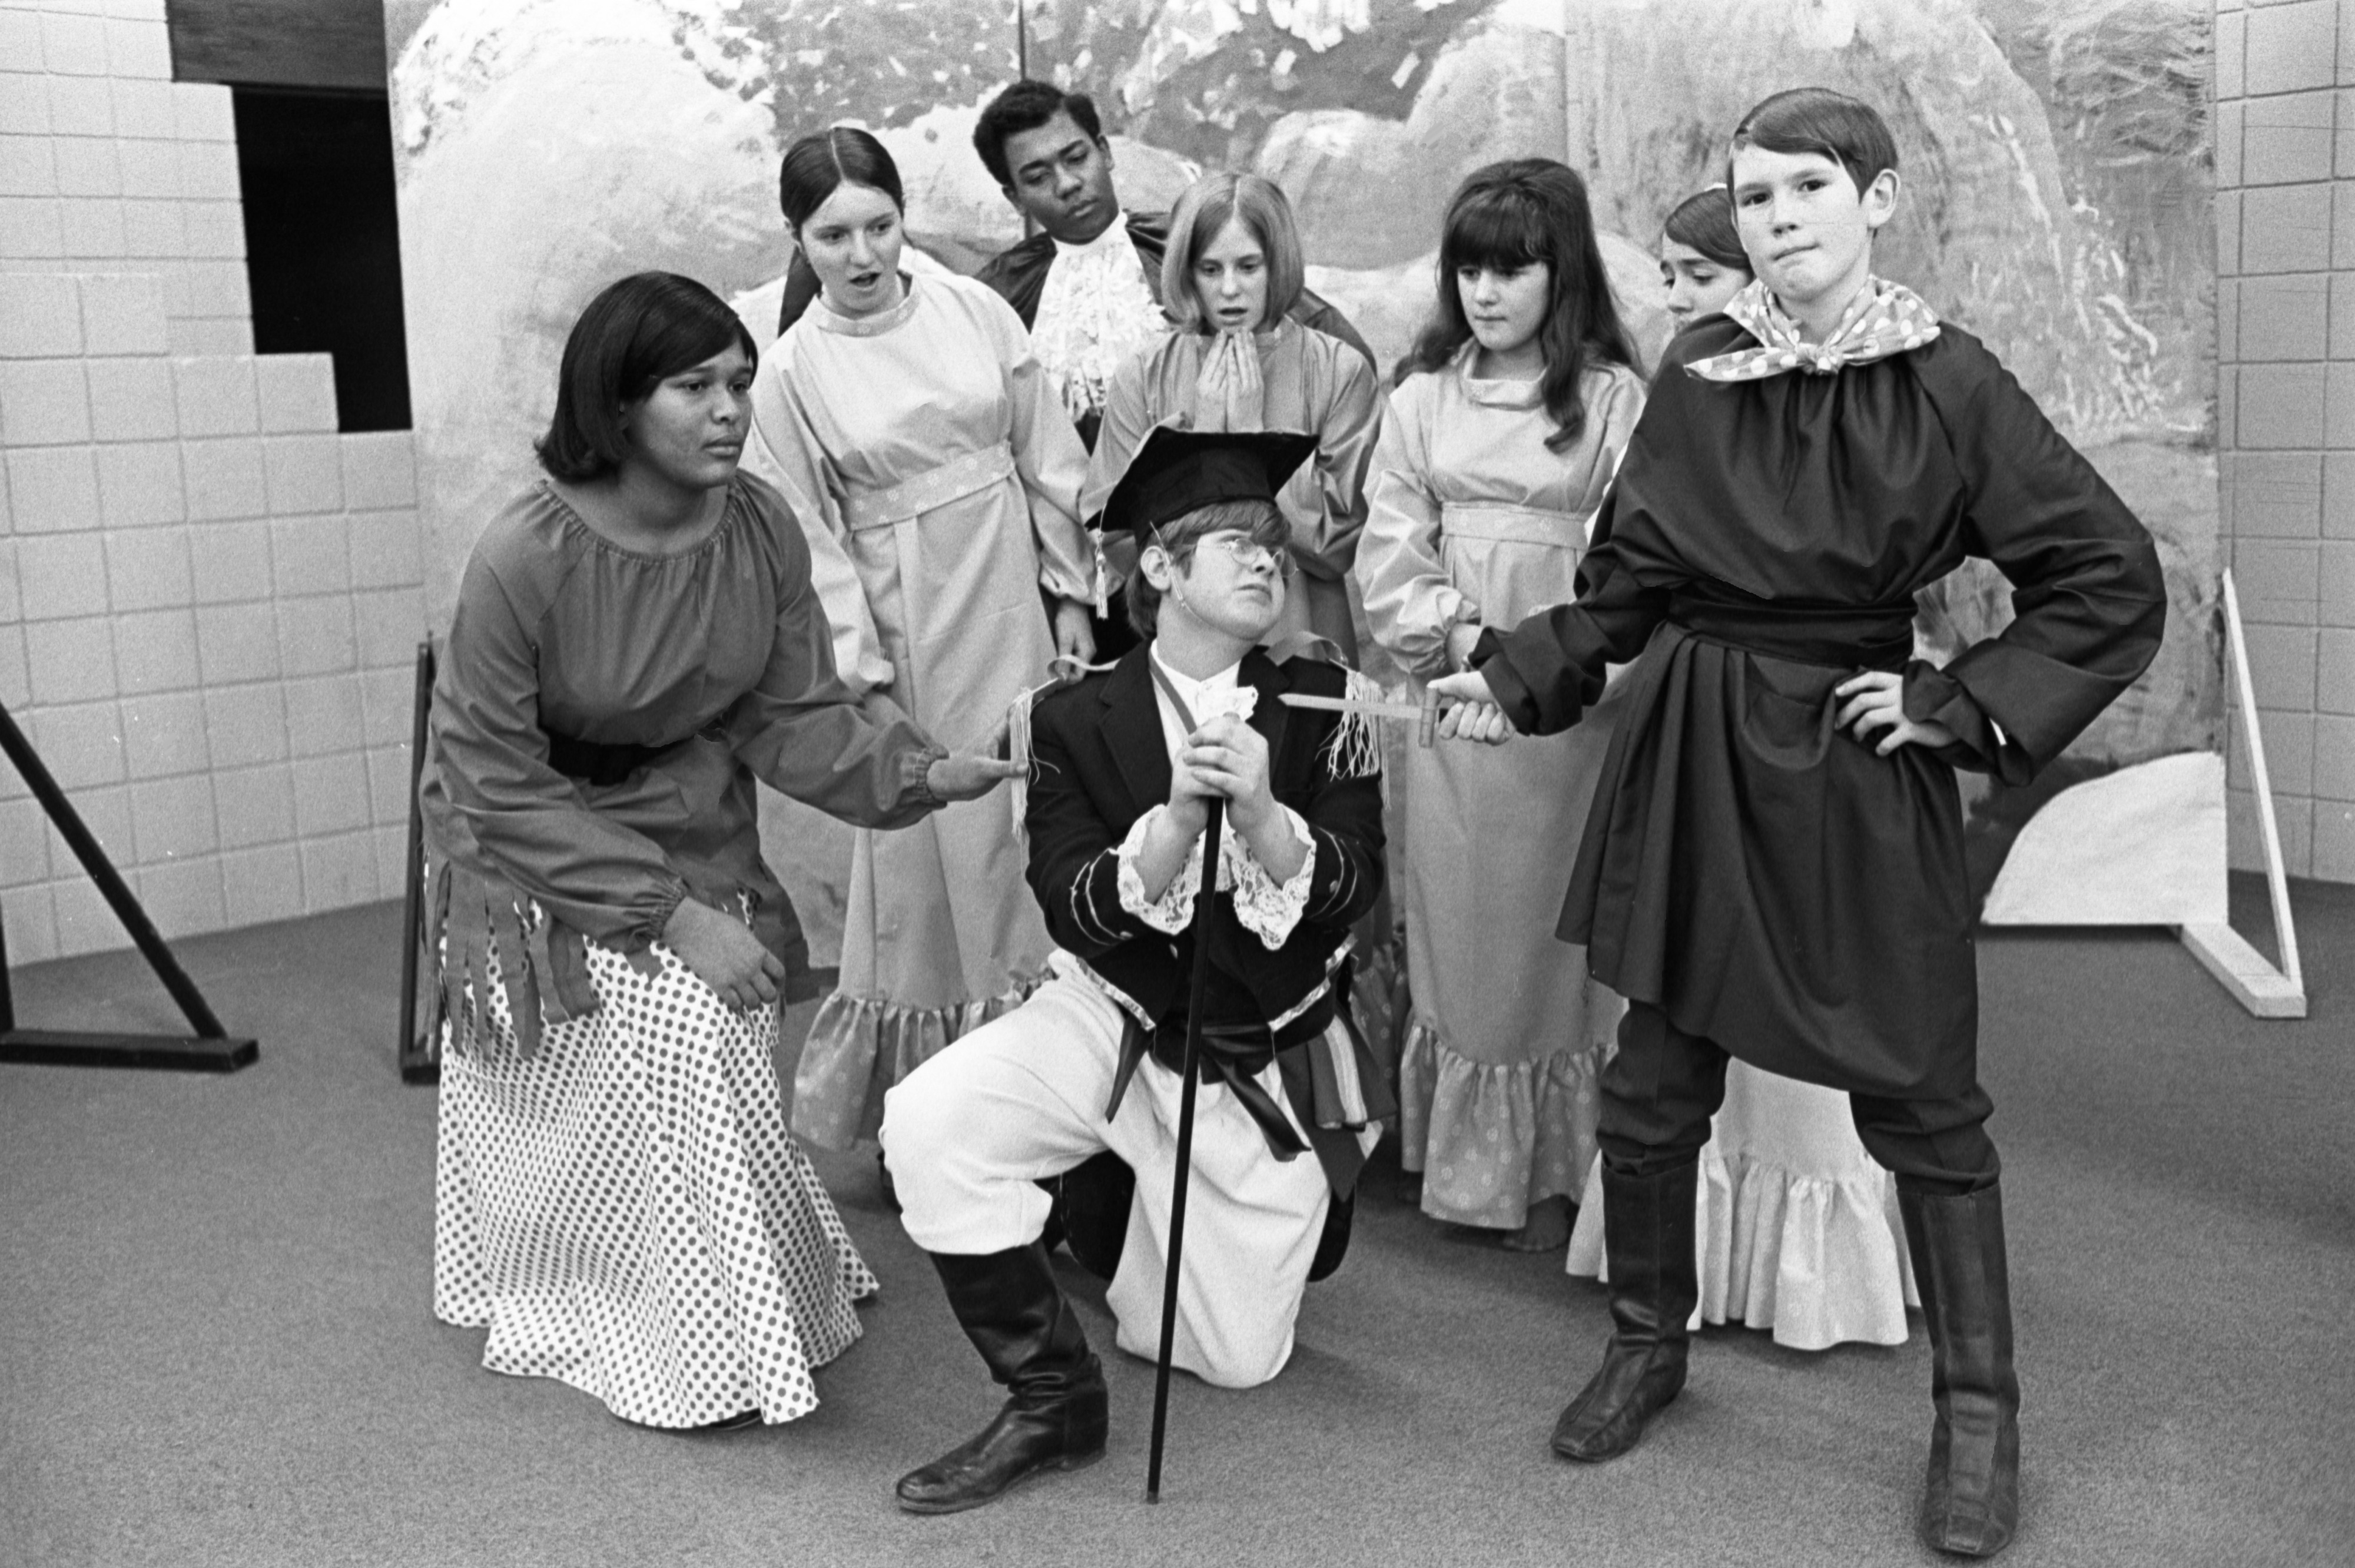 Greenhills Students Practice For The Play, 'Pirates of Penzance', March 22, 1970 image